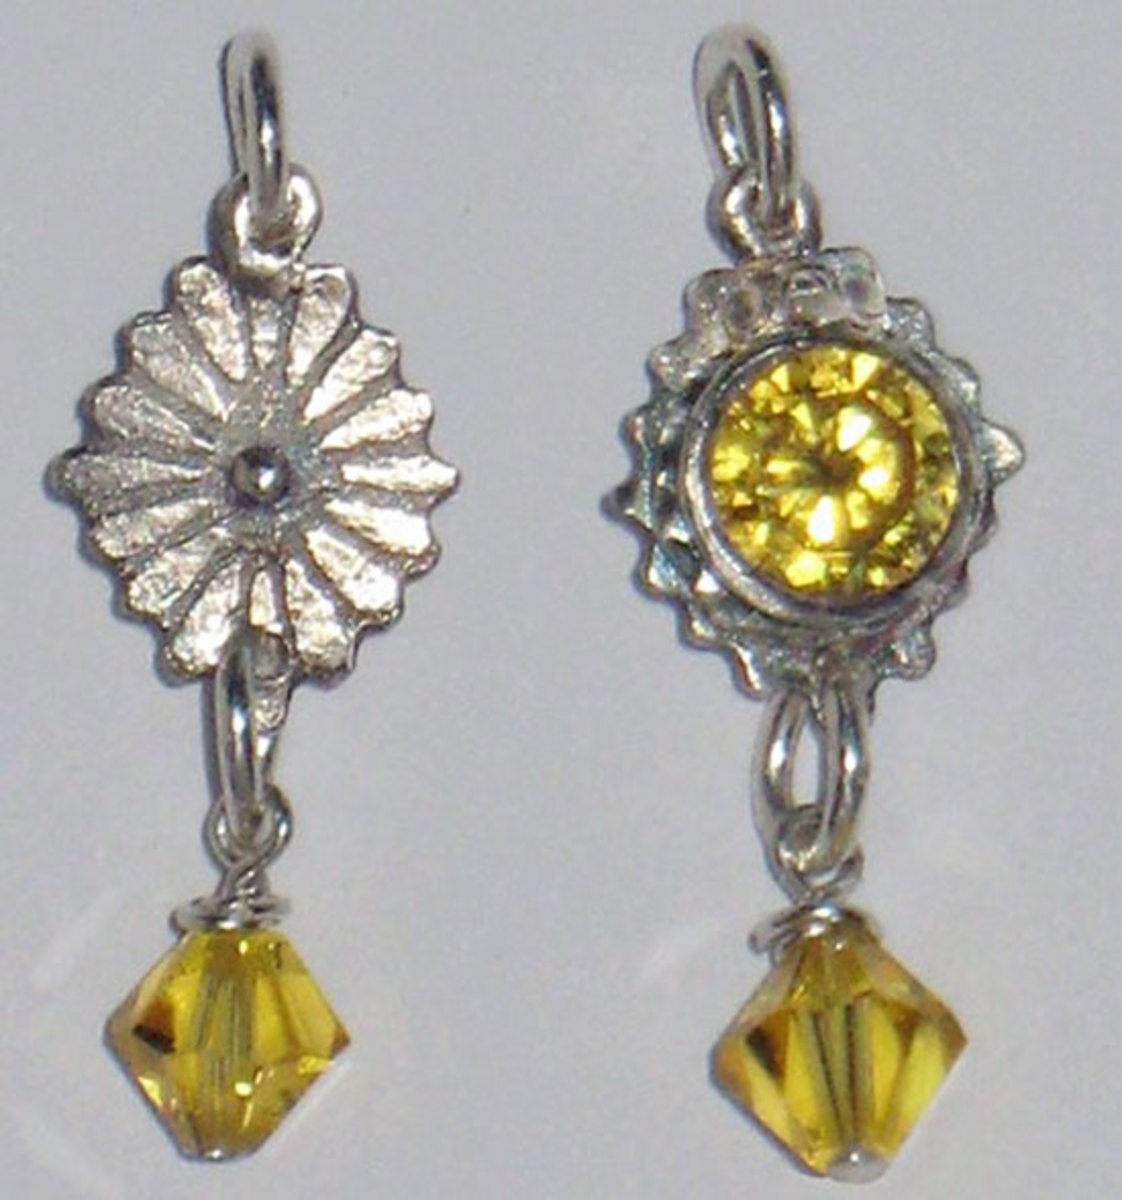 Photo: Fine silver charm (both sides shown) from metal clay, set with a tall citrine CZ and embellished with a crystal bead drop, designed, created and photographed by Margaret Schindel, all rights reserved.